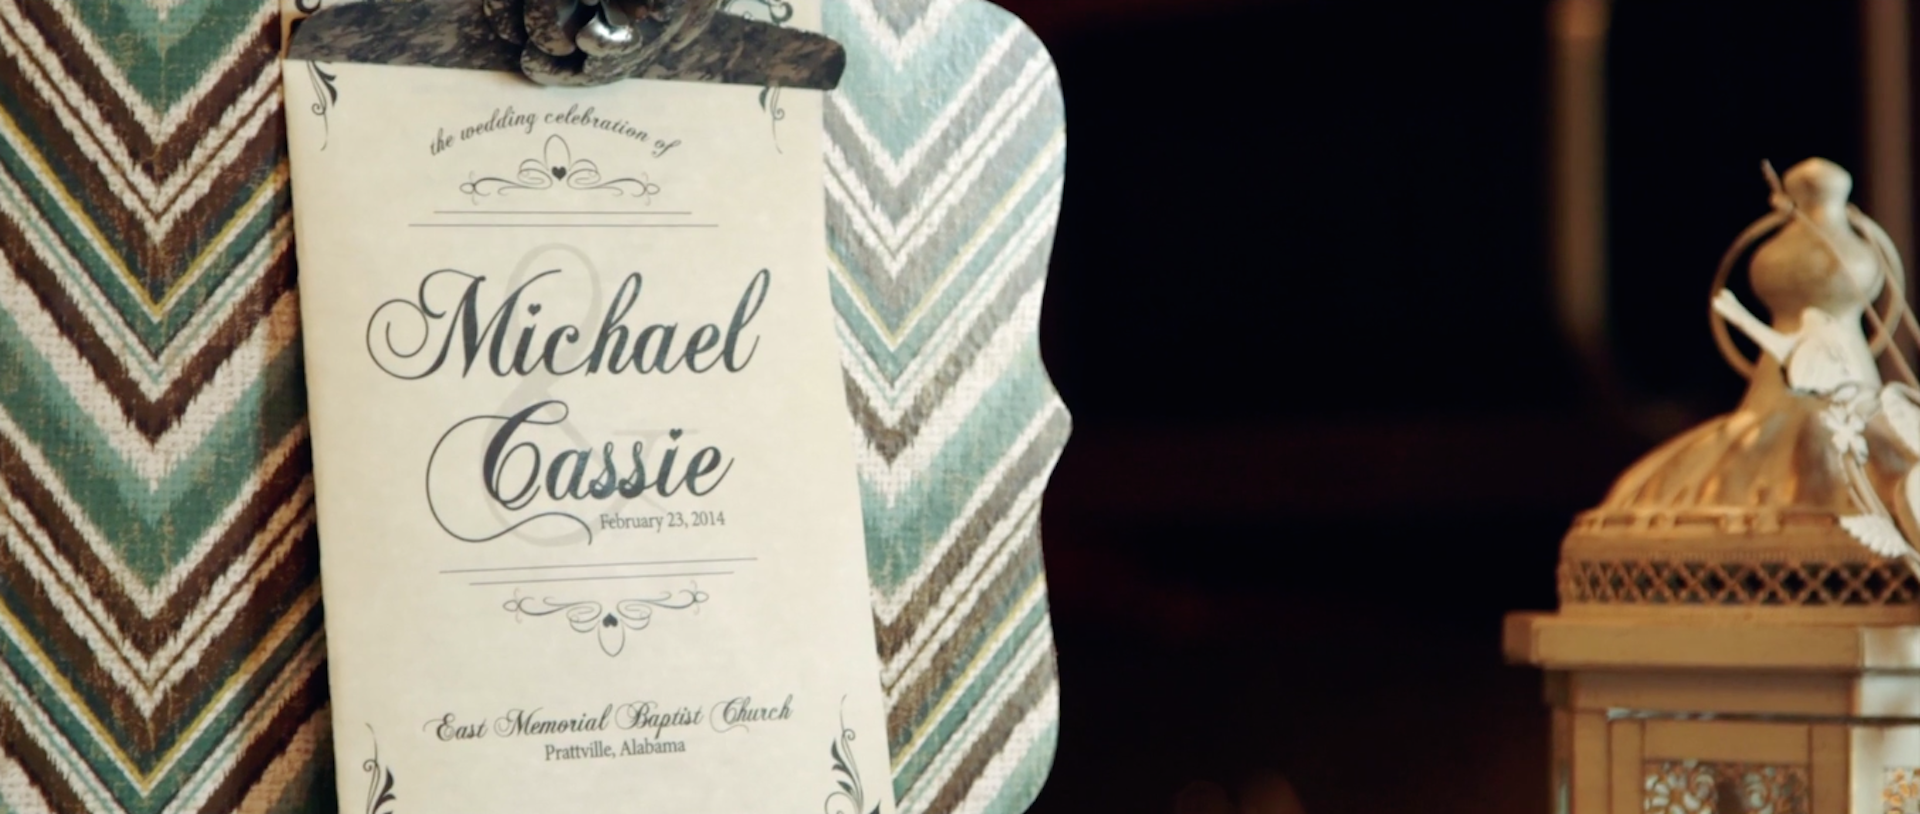 wedding-program-cassie-michael.jpg